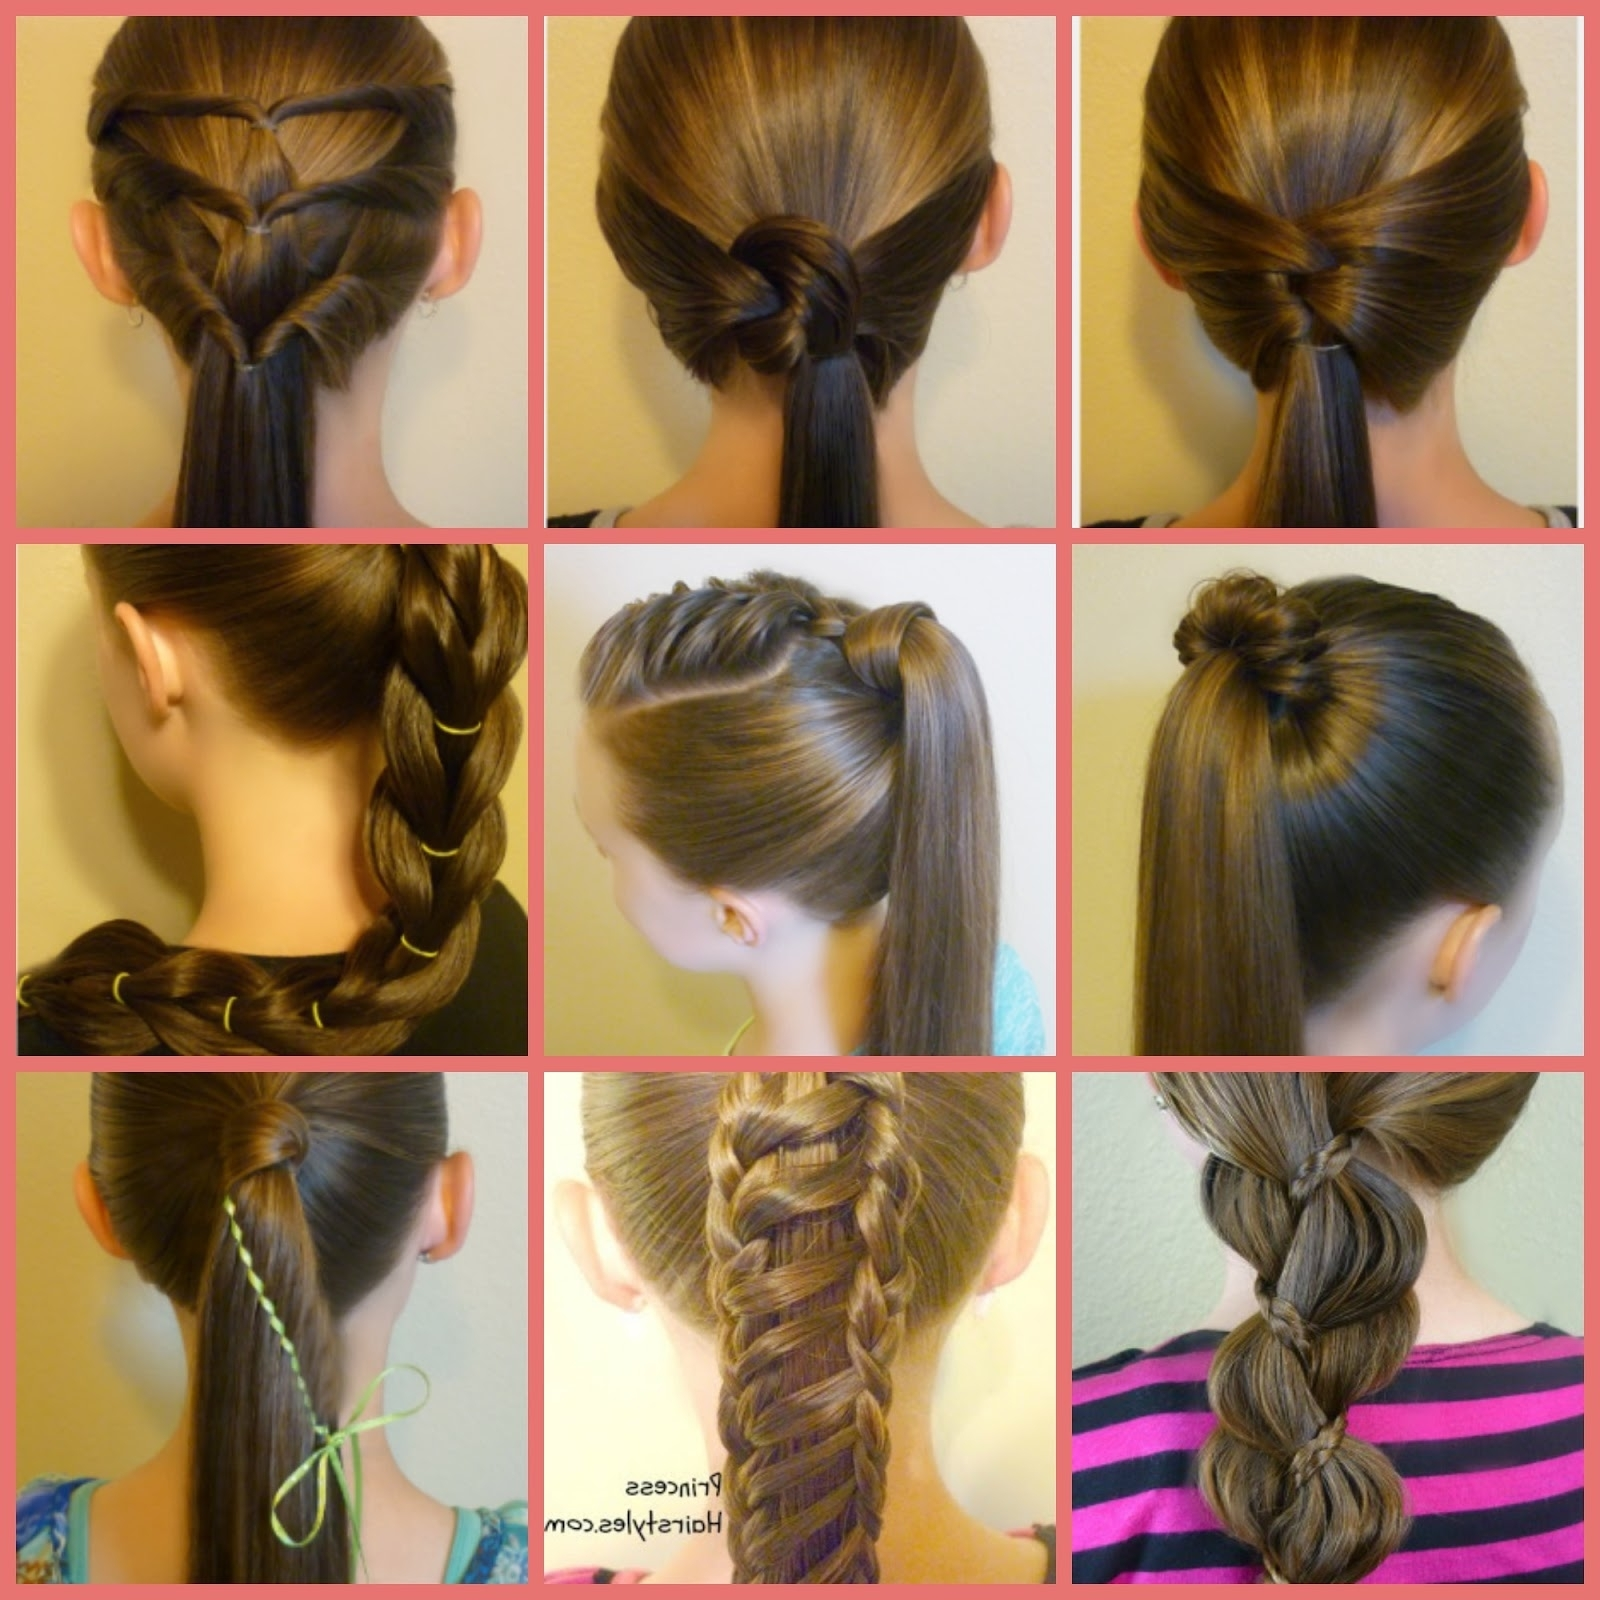 10 Easy Ponytail Hairstyles – Hairstyles For Girls – Princess Hairstyles In Most Current Long Classic Ponytail Hairstyles (View 18 of 20)